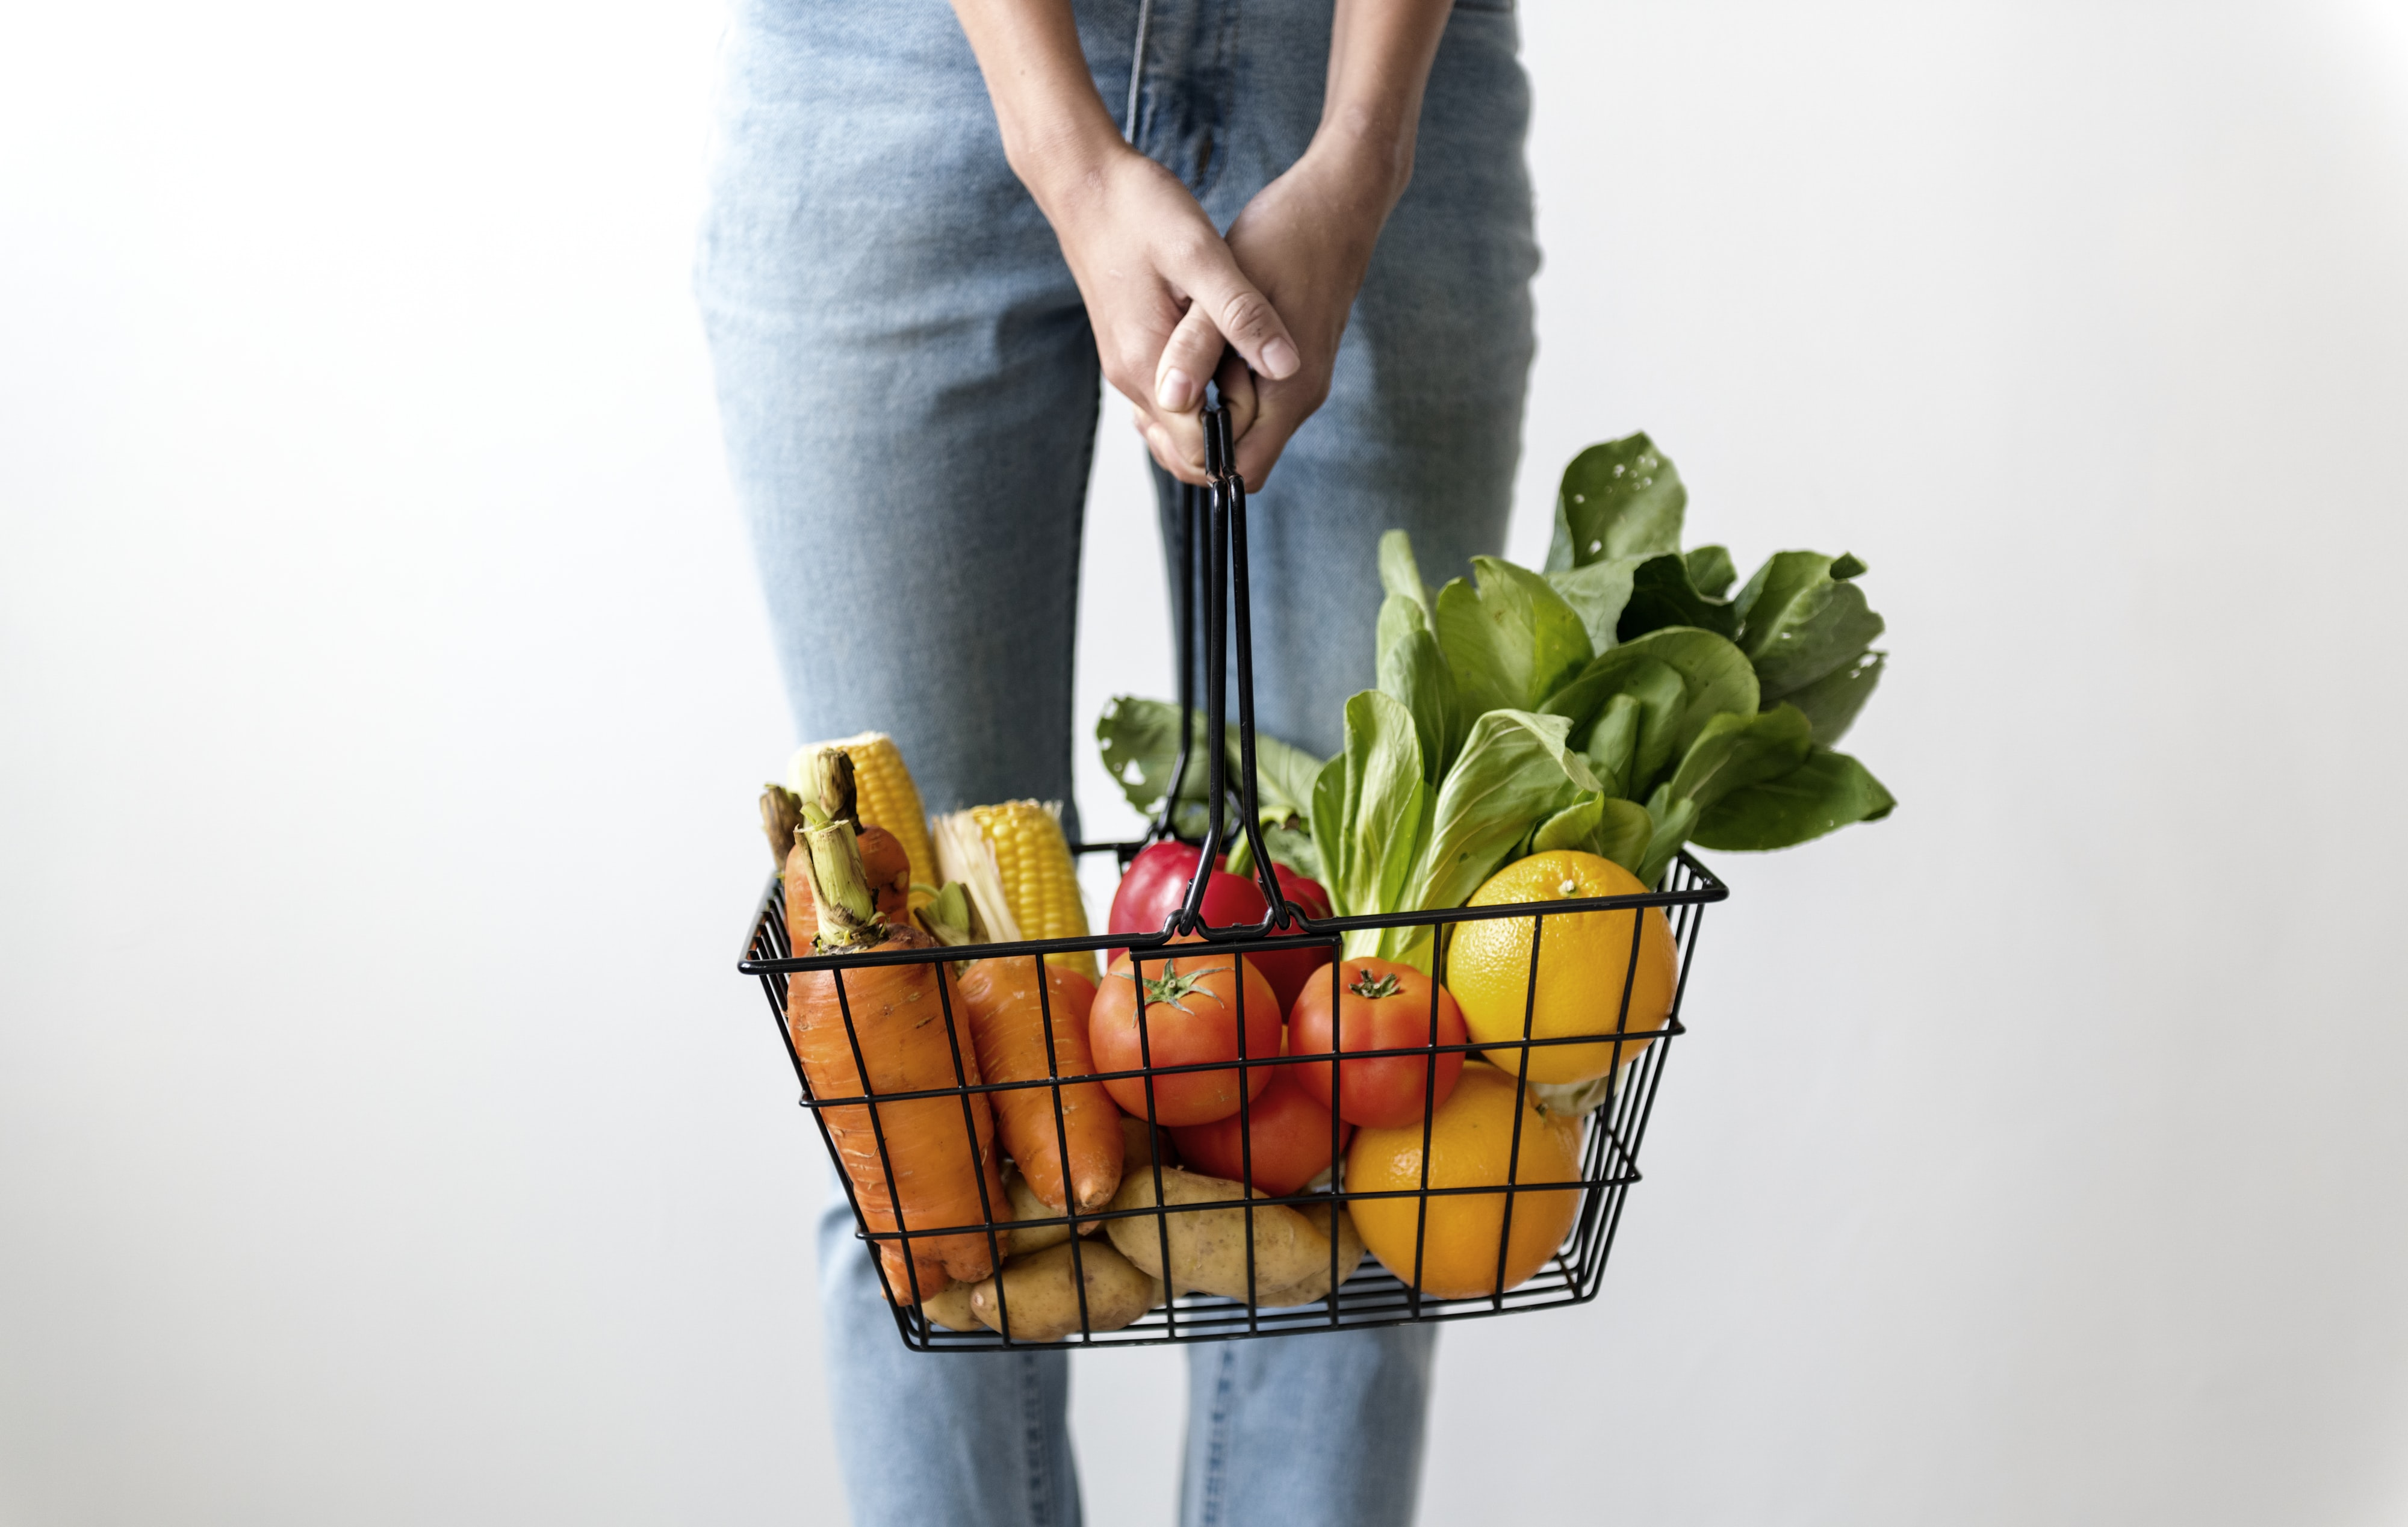 person holding basket filled with vegetables